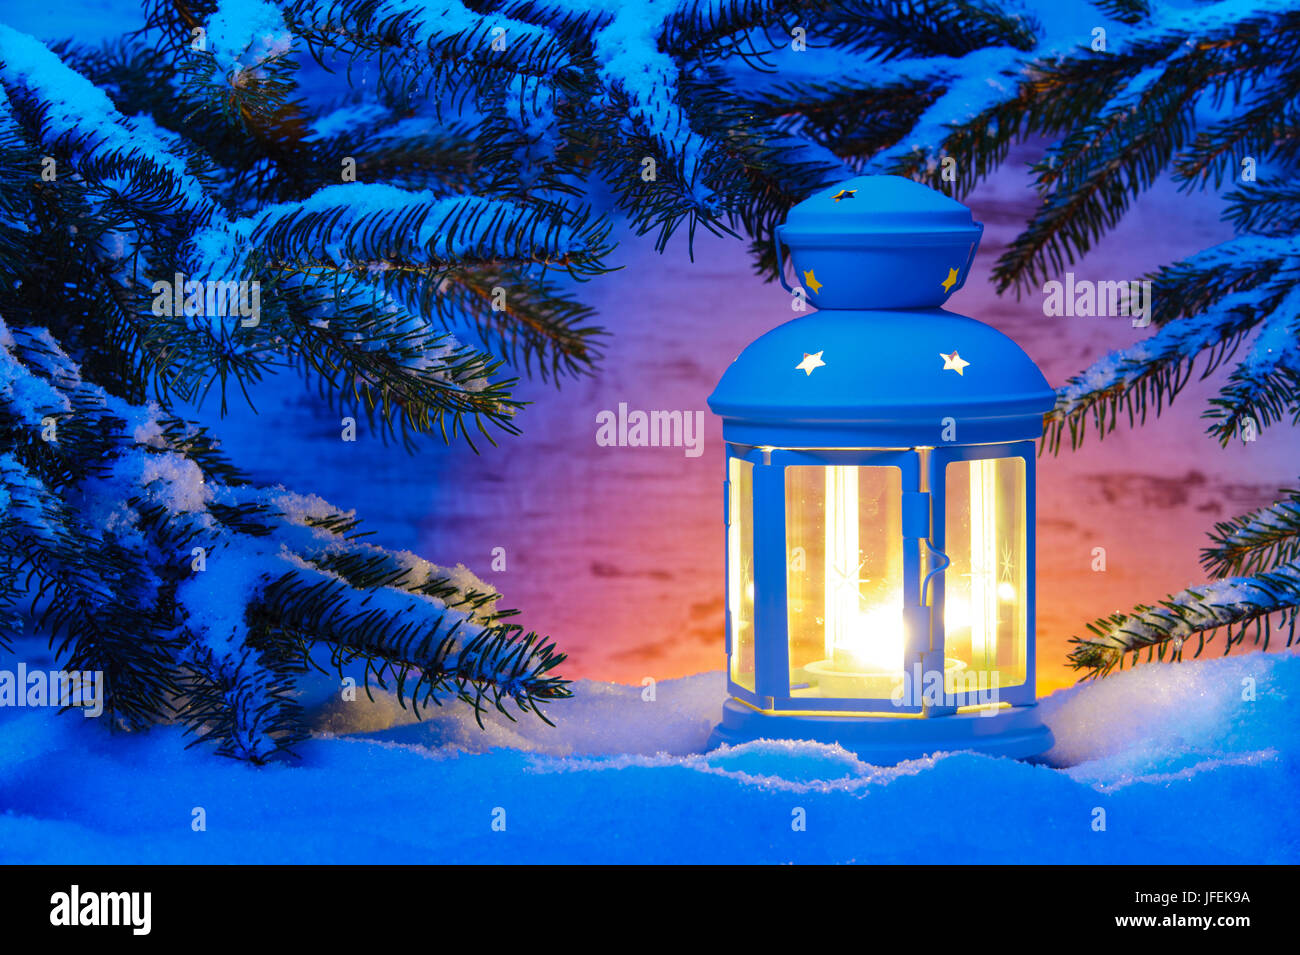 stilllife weihnachten winter laterne im schnee stockfoto bild 147225270 alamy. Black Bedroom Furniture Sets. Home Design Ideas